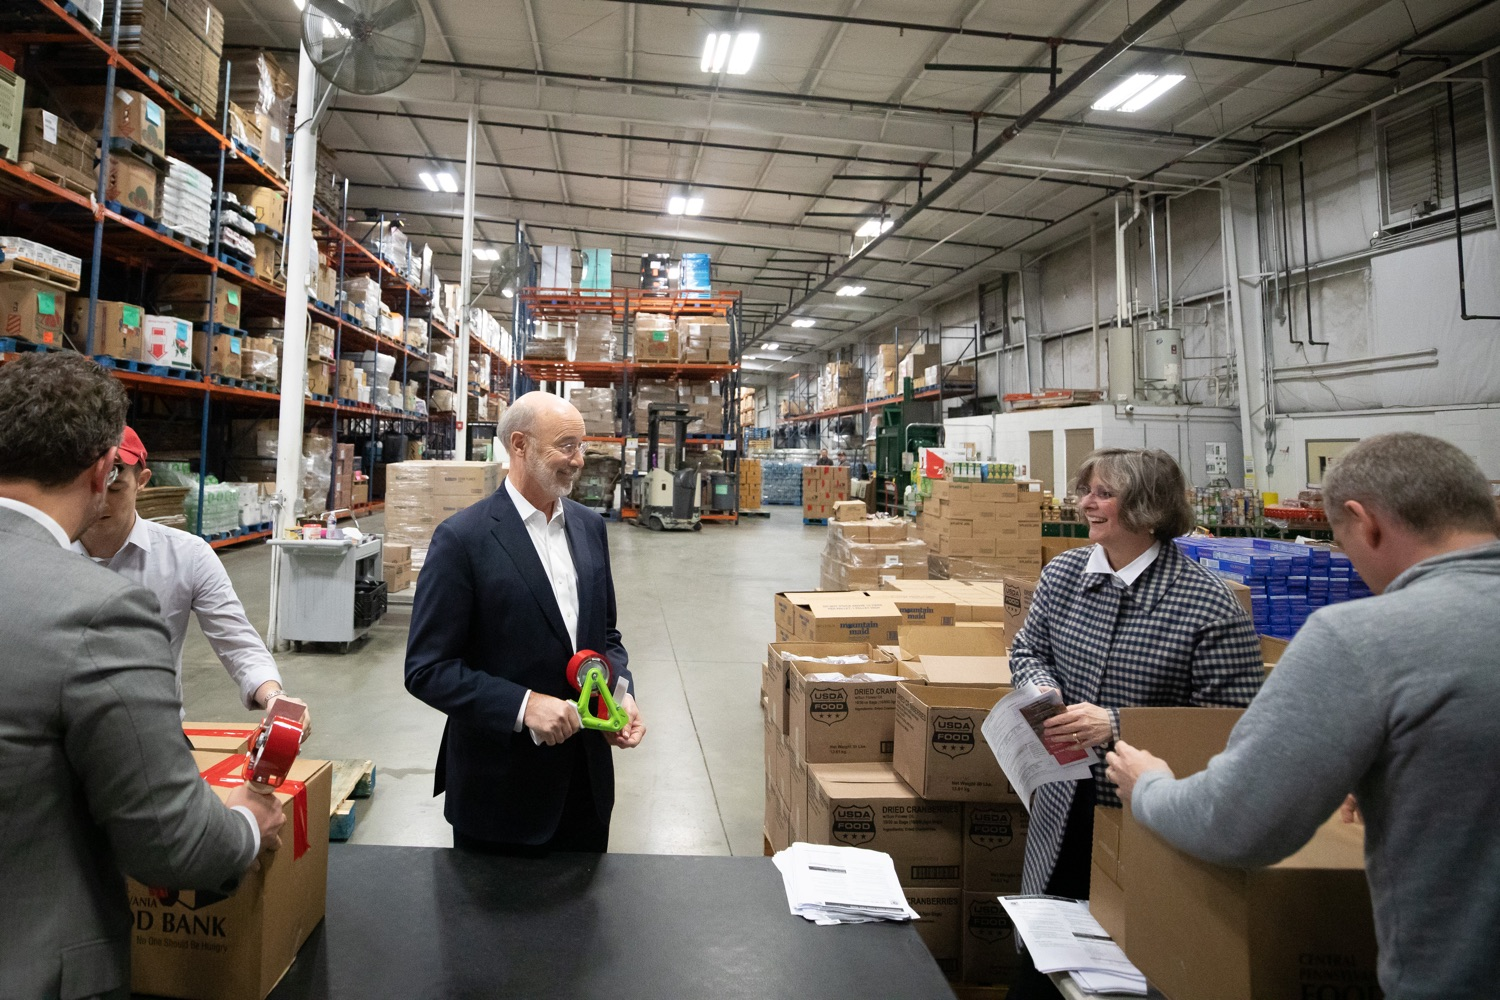 "<a href=""https://filesource.wostreaming.net/commonwealthofpa/photo/17632_gov_foodbank_volunteering_dz_018.jpg"" target=""_blank"">⇣ Download Photo<br></a>Governor Tom Wolf loading boxes of food at the Central Pennsylvania Food Bank.  The governor and first lady visit the Central Pennsylvania Food Bank in Harrisburg to participate in a volunteer project, packing boxes of food for veterans and their families. Ahead of Thanksgiving and the holiday season, Governor Tom Wolf and First Lady Frances Wolf are reminding Pennsylvanians of the importance of helping each other. Harrisburg, PA  Tuesday November 26, 2019"